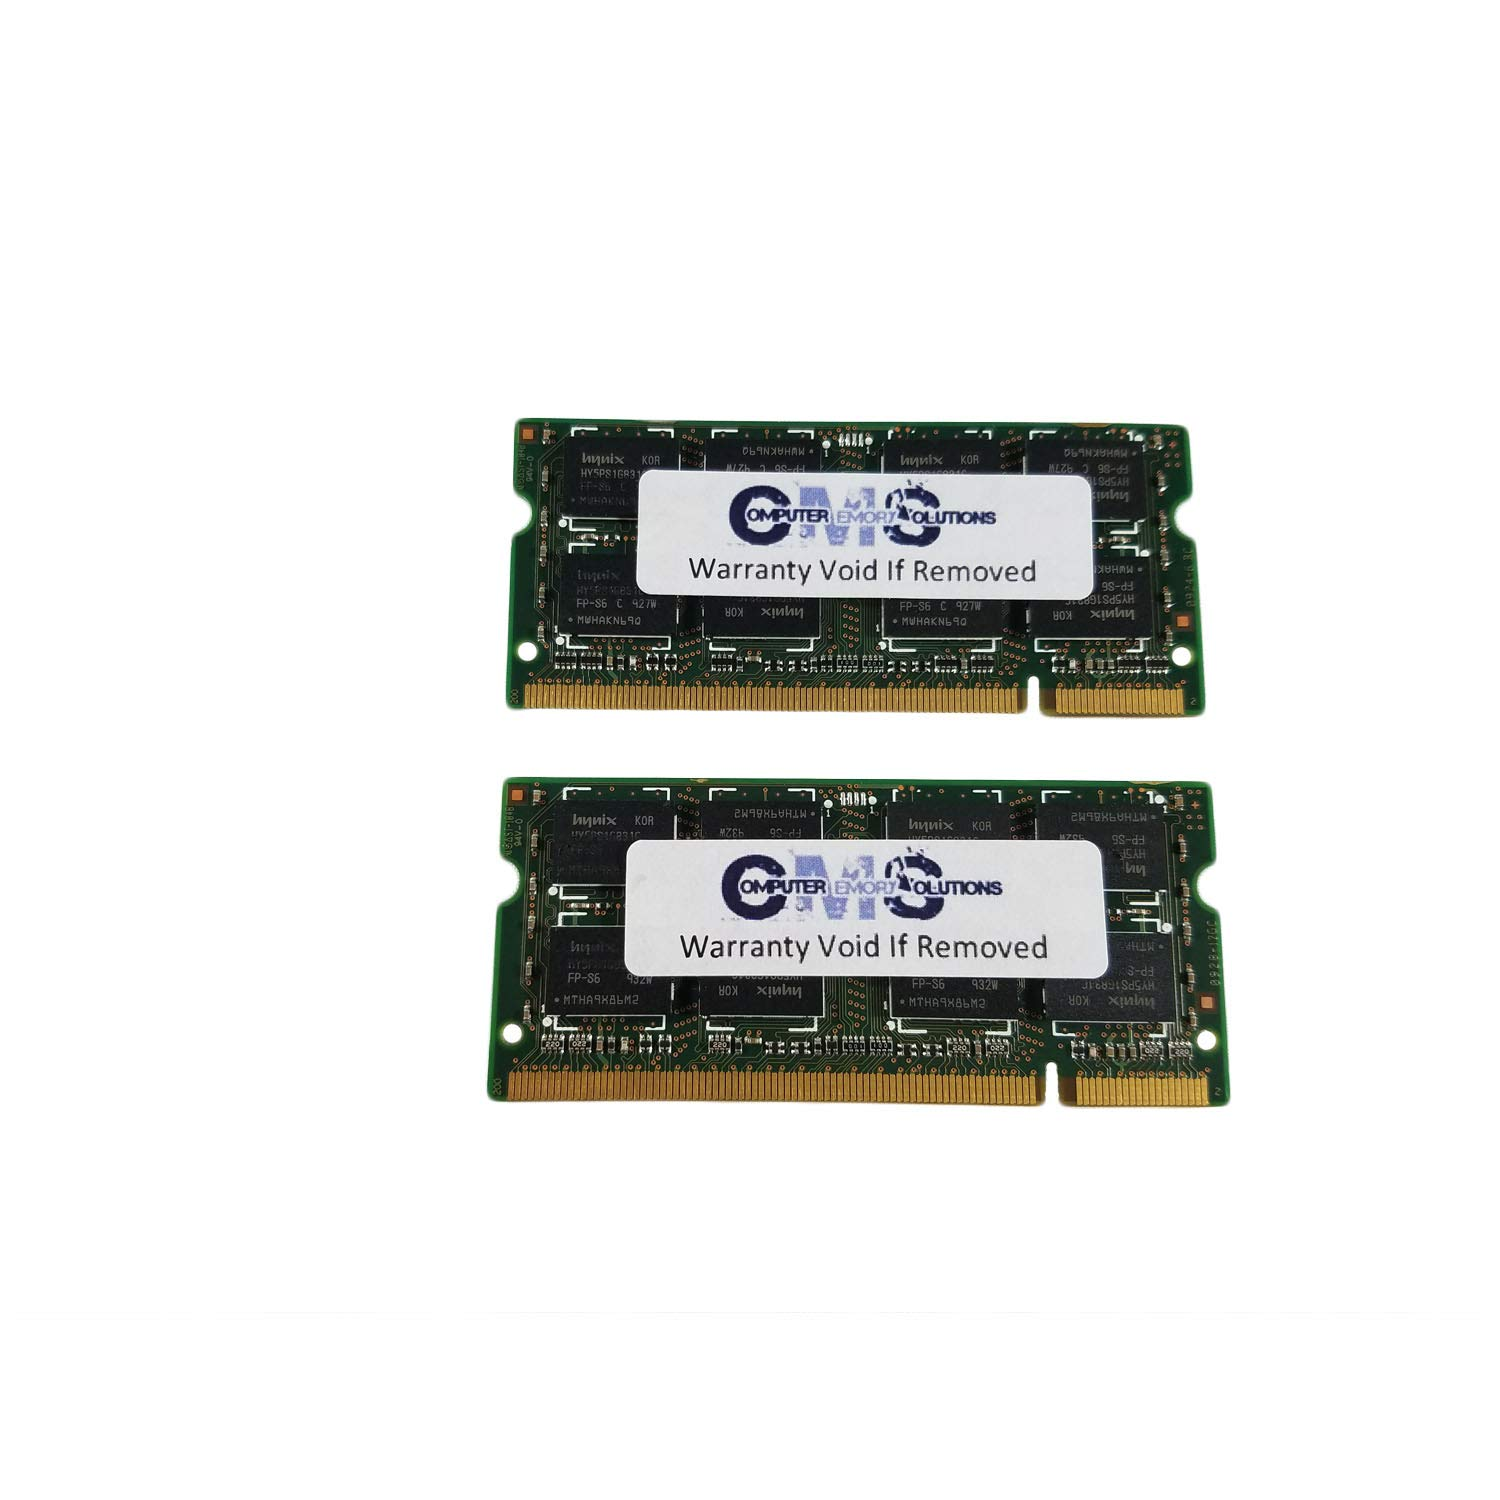 60ae5a8b7989 8Gb (2X4Gb) Memory Ram Compatible with Ibm Lenovo Thinkpad T61, T61P Ddr2  Pc5300 Sodimm By CMS B116